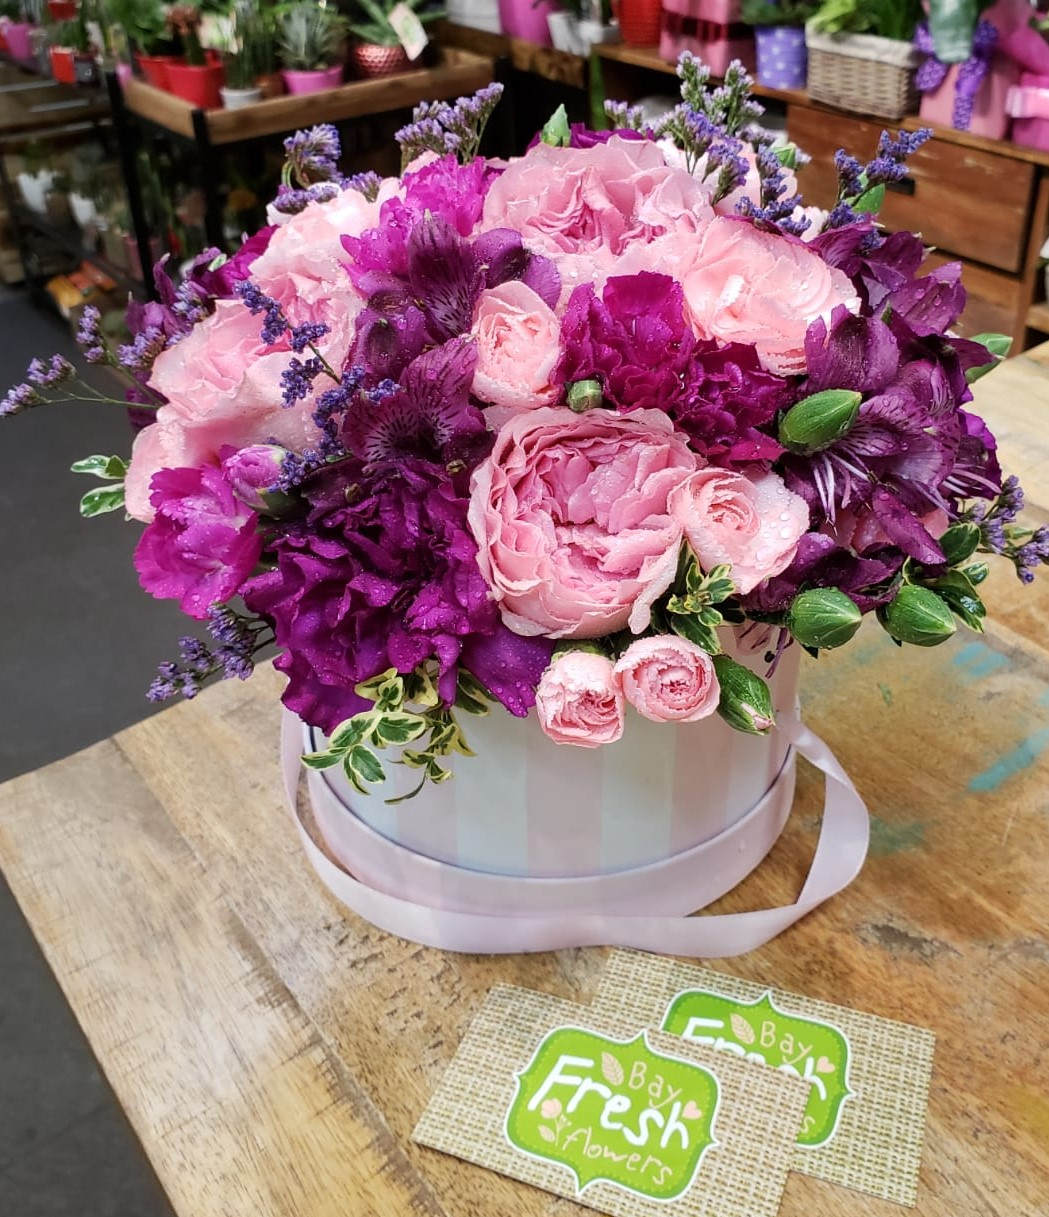 Vancouver Wedding Flowers: Flowers Bouquet. Buy In Vancouver. Fresh